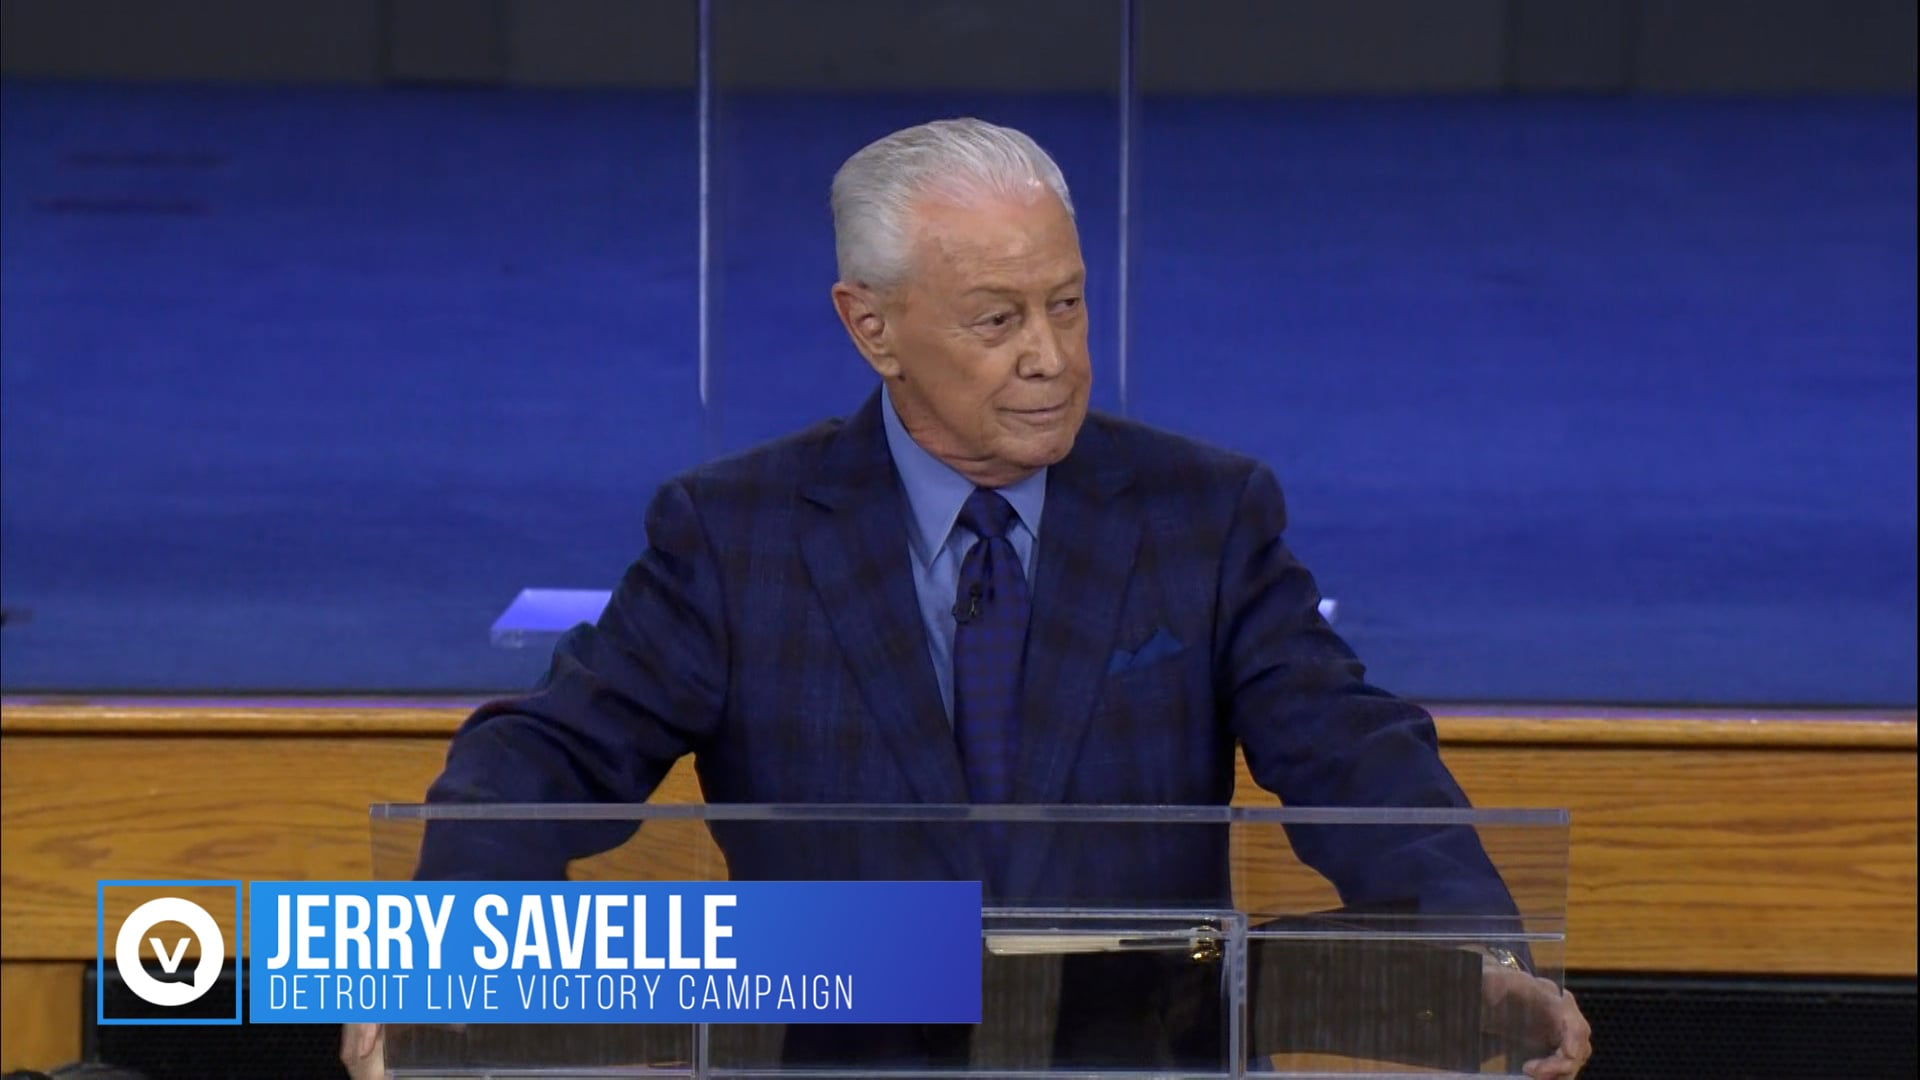 """At the 2021 Detroit Victory Campaign, Jerry Savelle shares a prophetic message about 2021—the Year of Firsts. """"Firsts"""" are designed by God to mark you forever. Every time you experience a """"first"""" God will use it as a barrier breaker. If you make """"firsts"""" happen for others, God will make """"firsts"""" happen for you."""